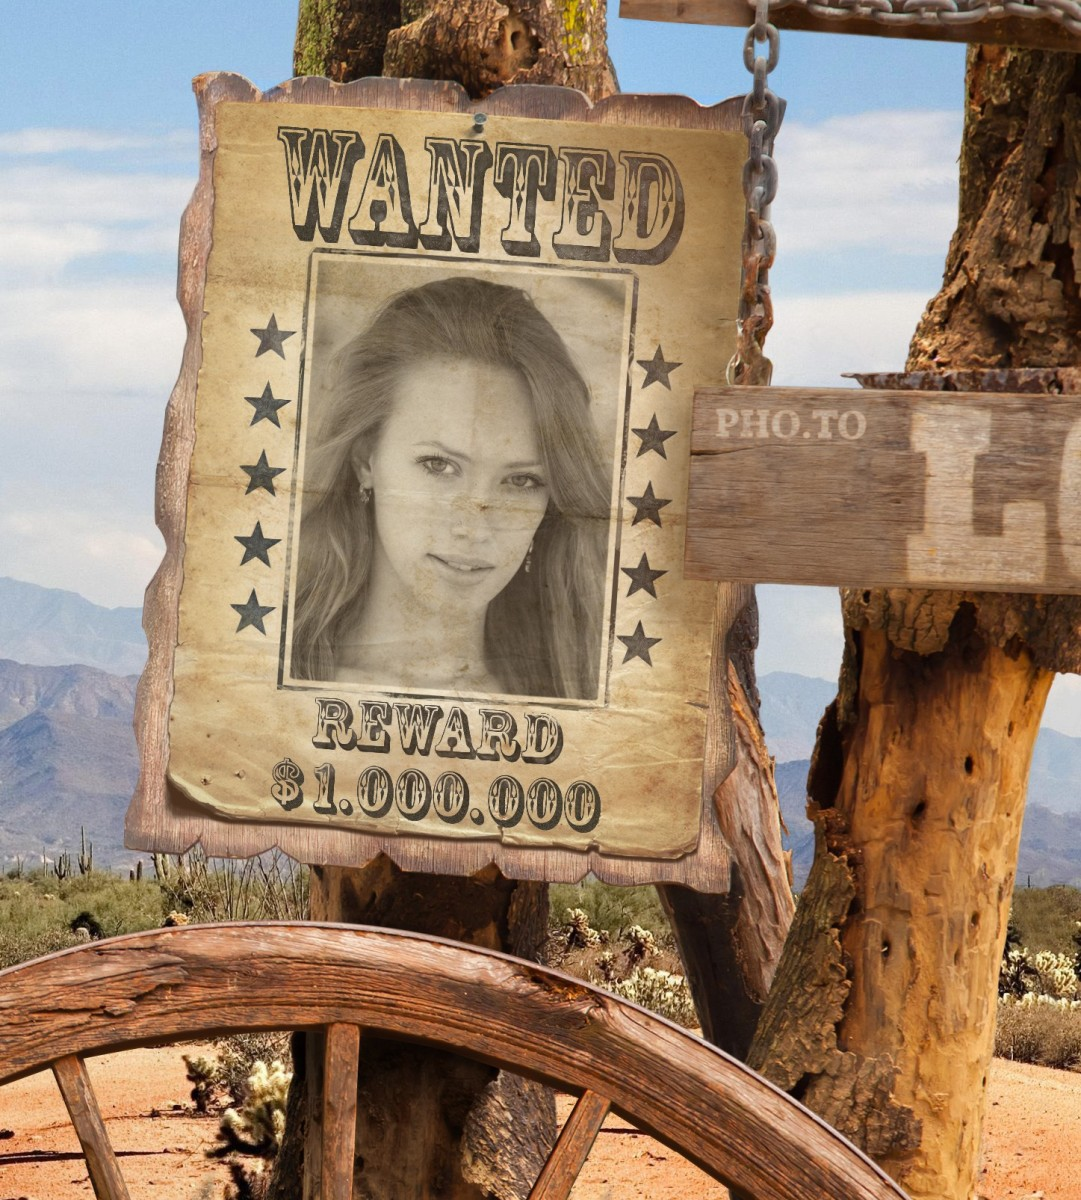 Become the bandit queen with Wanted poster maker!